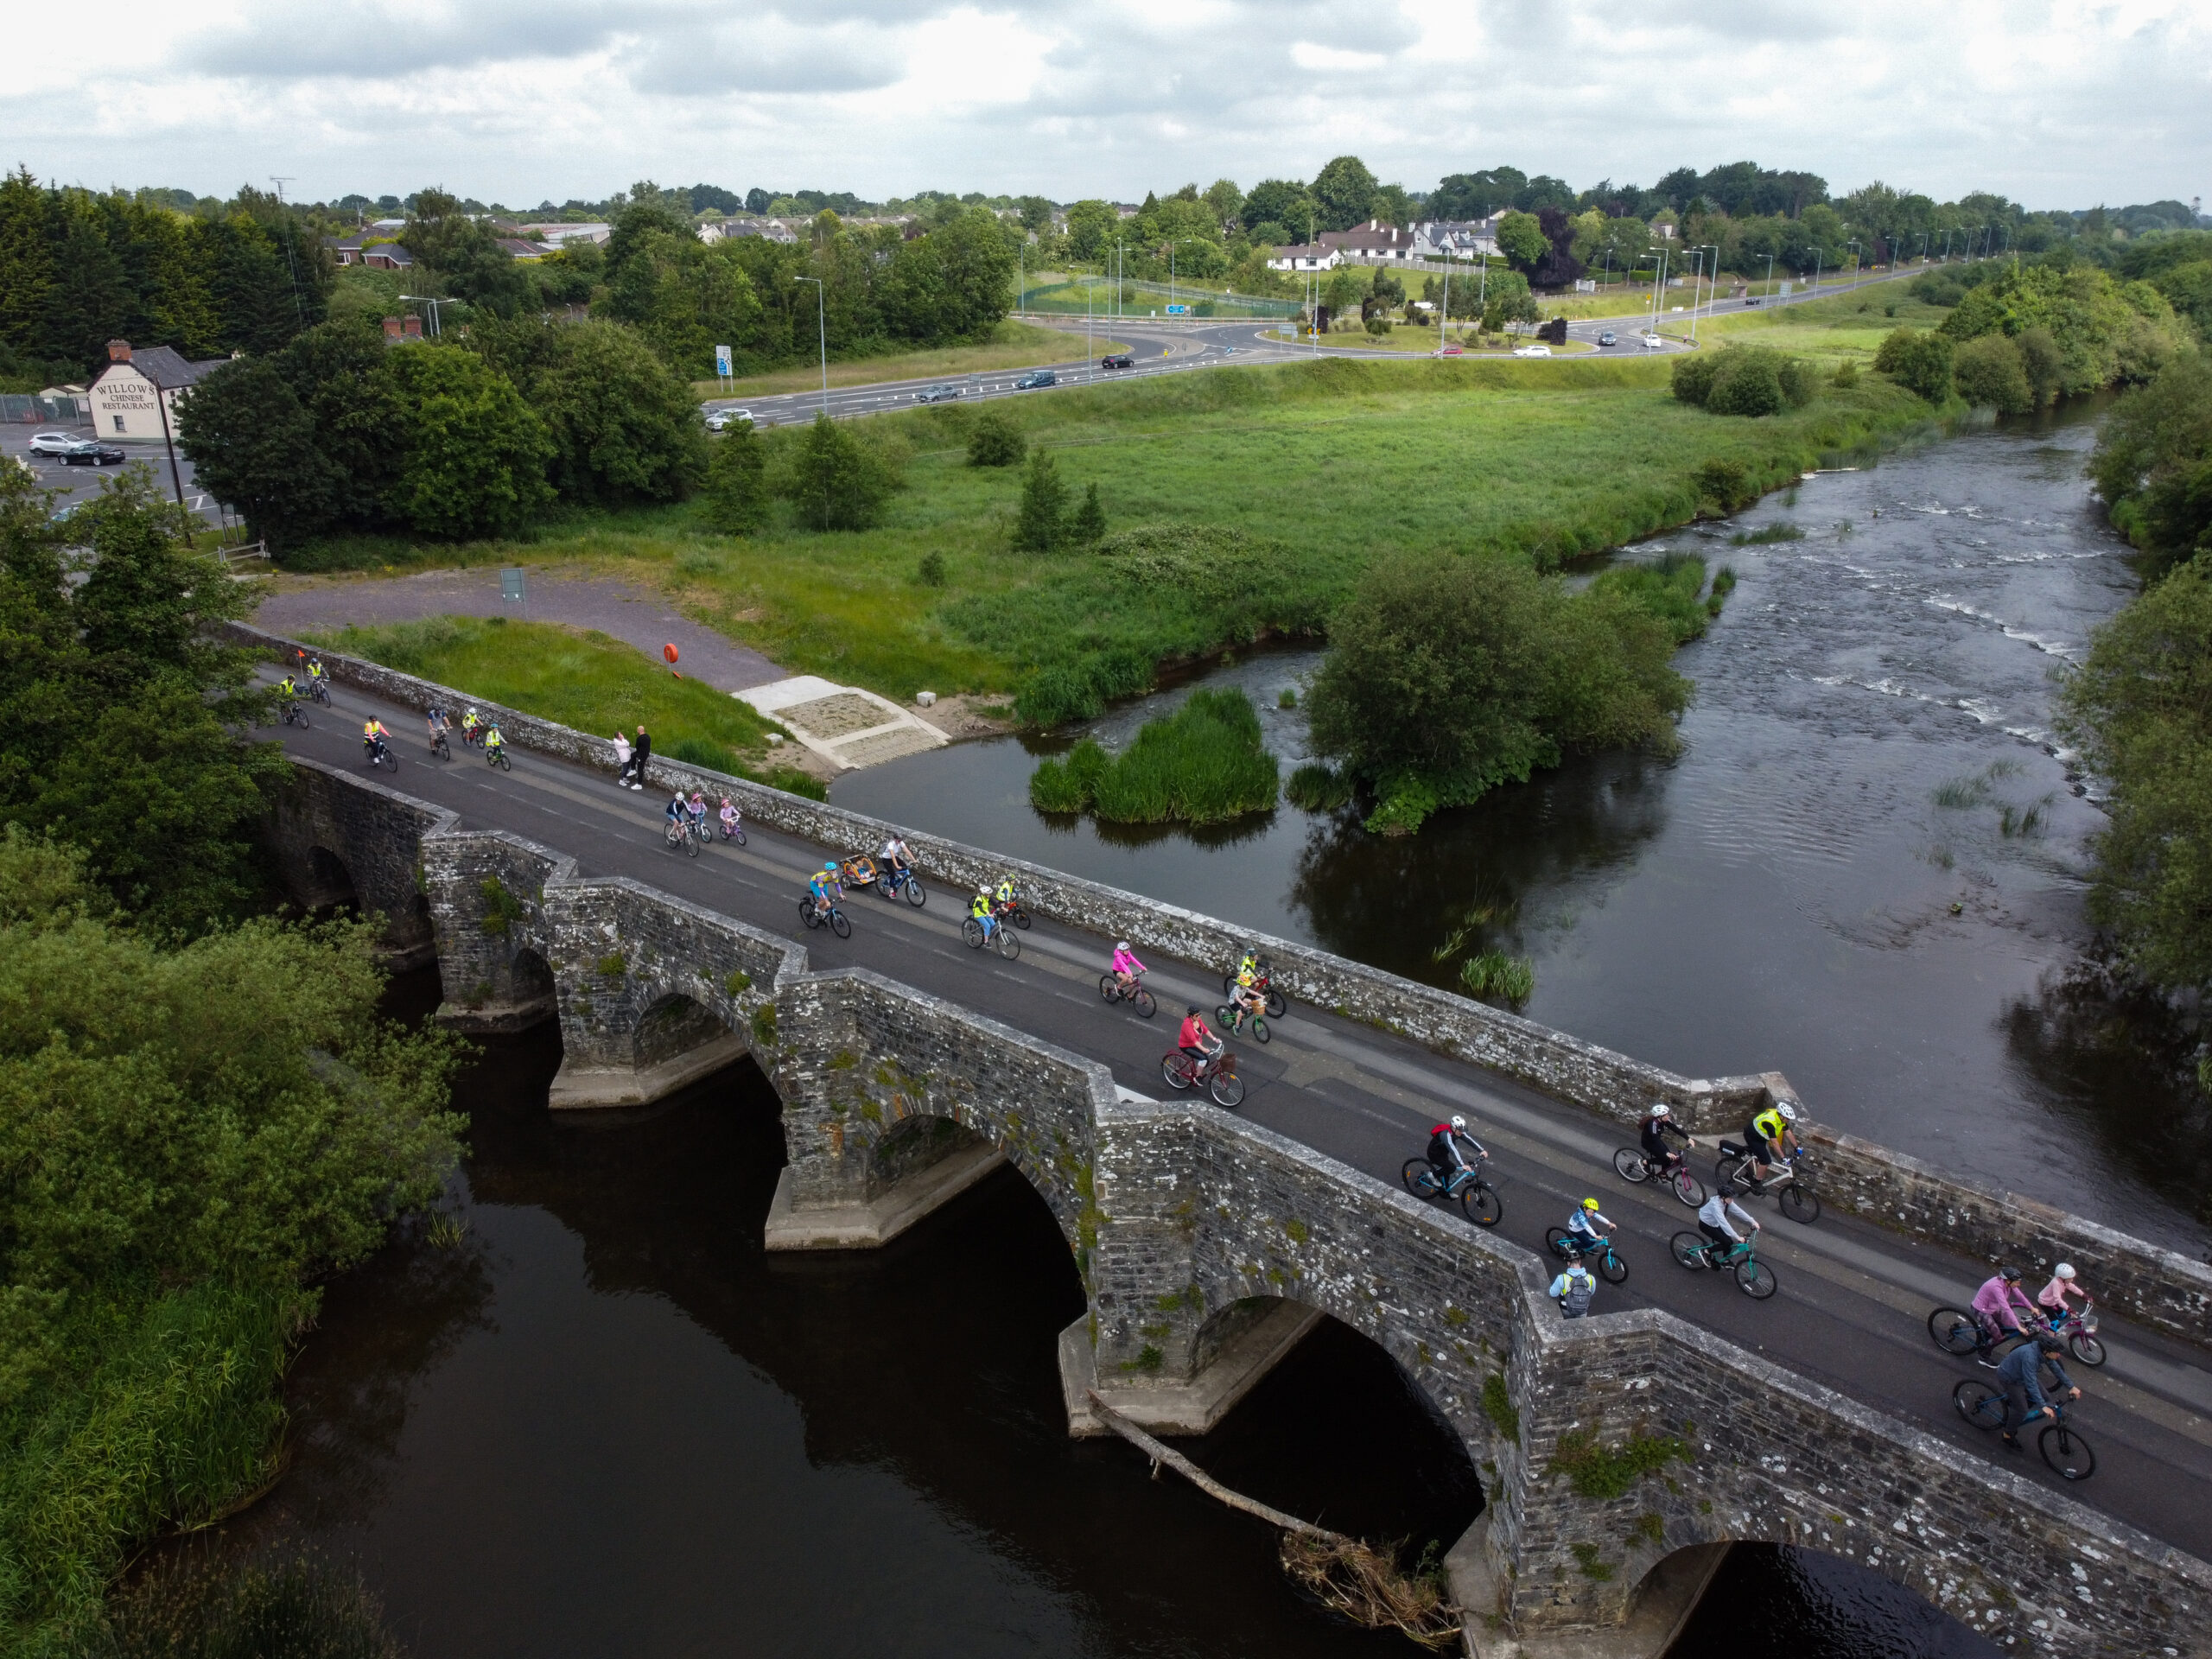 Group of people cycling across the river Boyne at old kilcarn bridge